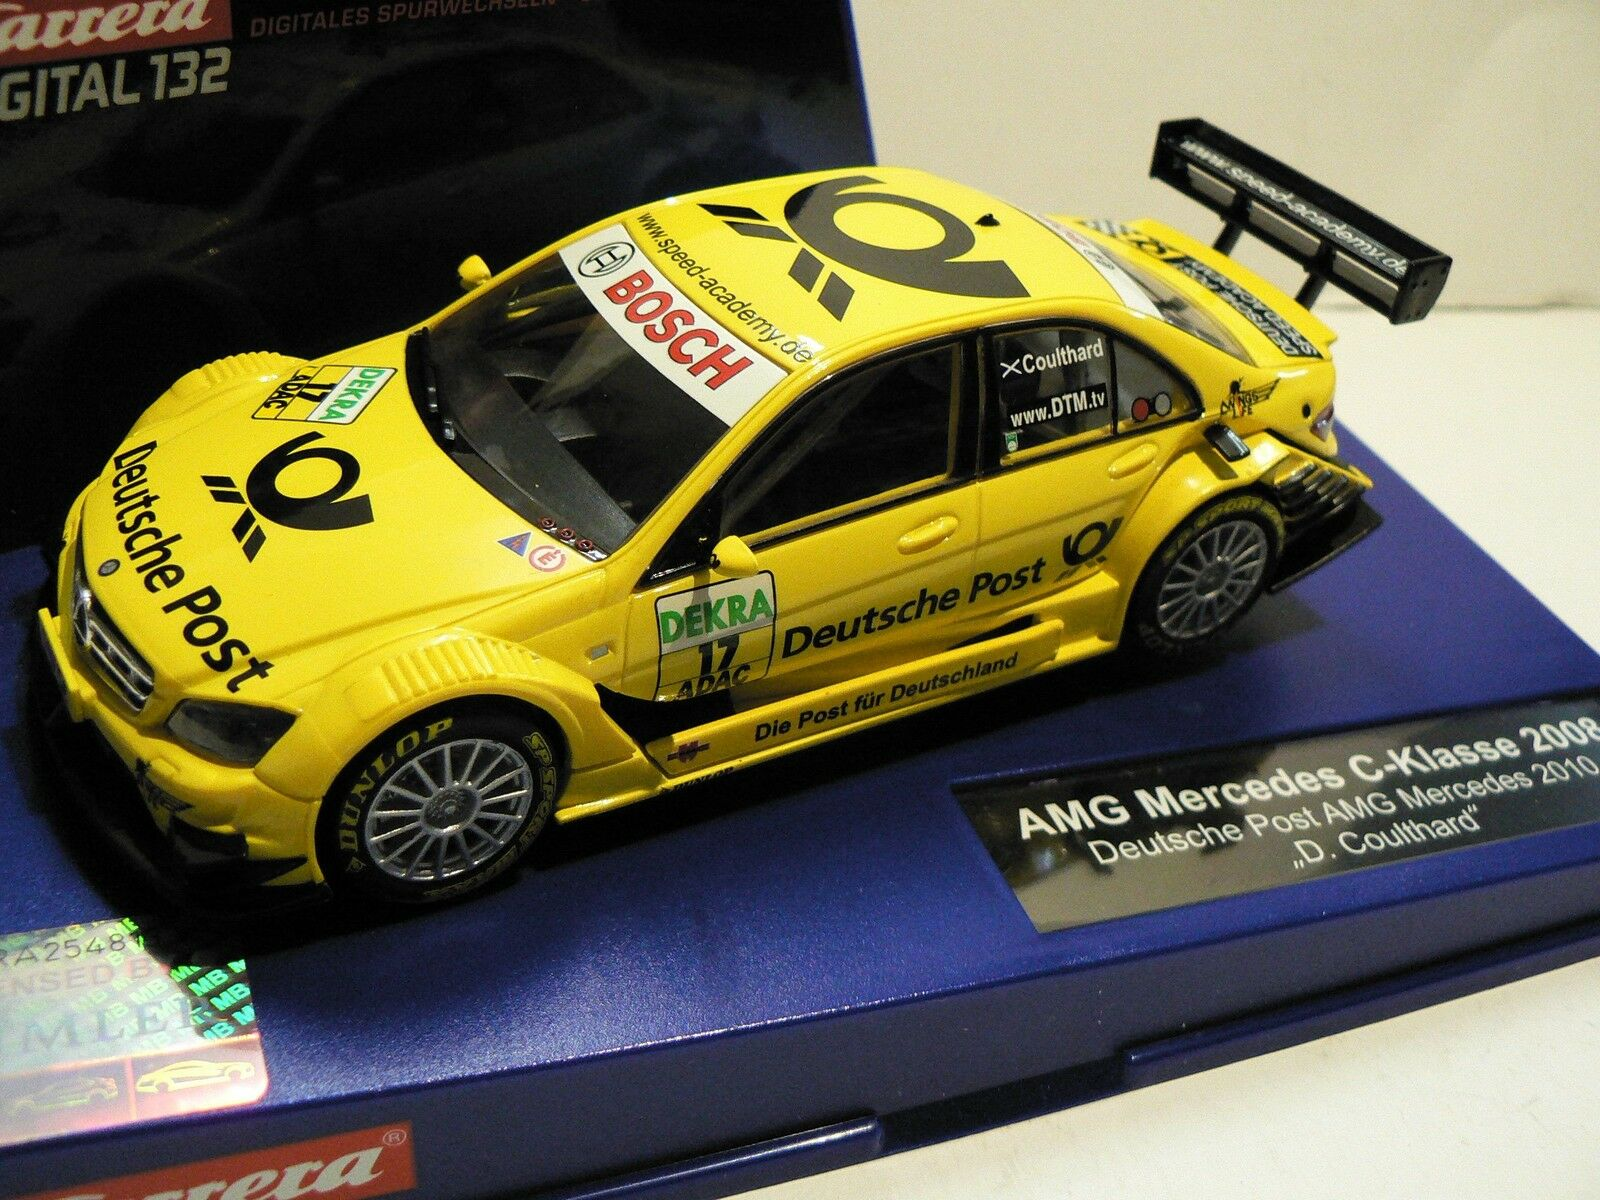 Carrera Digital 132 30561 Amg-Mercedes DTM Deutsche post David Coulthard New